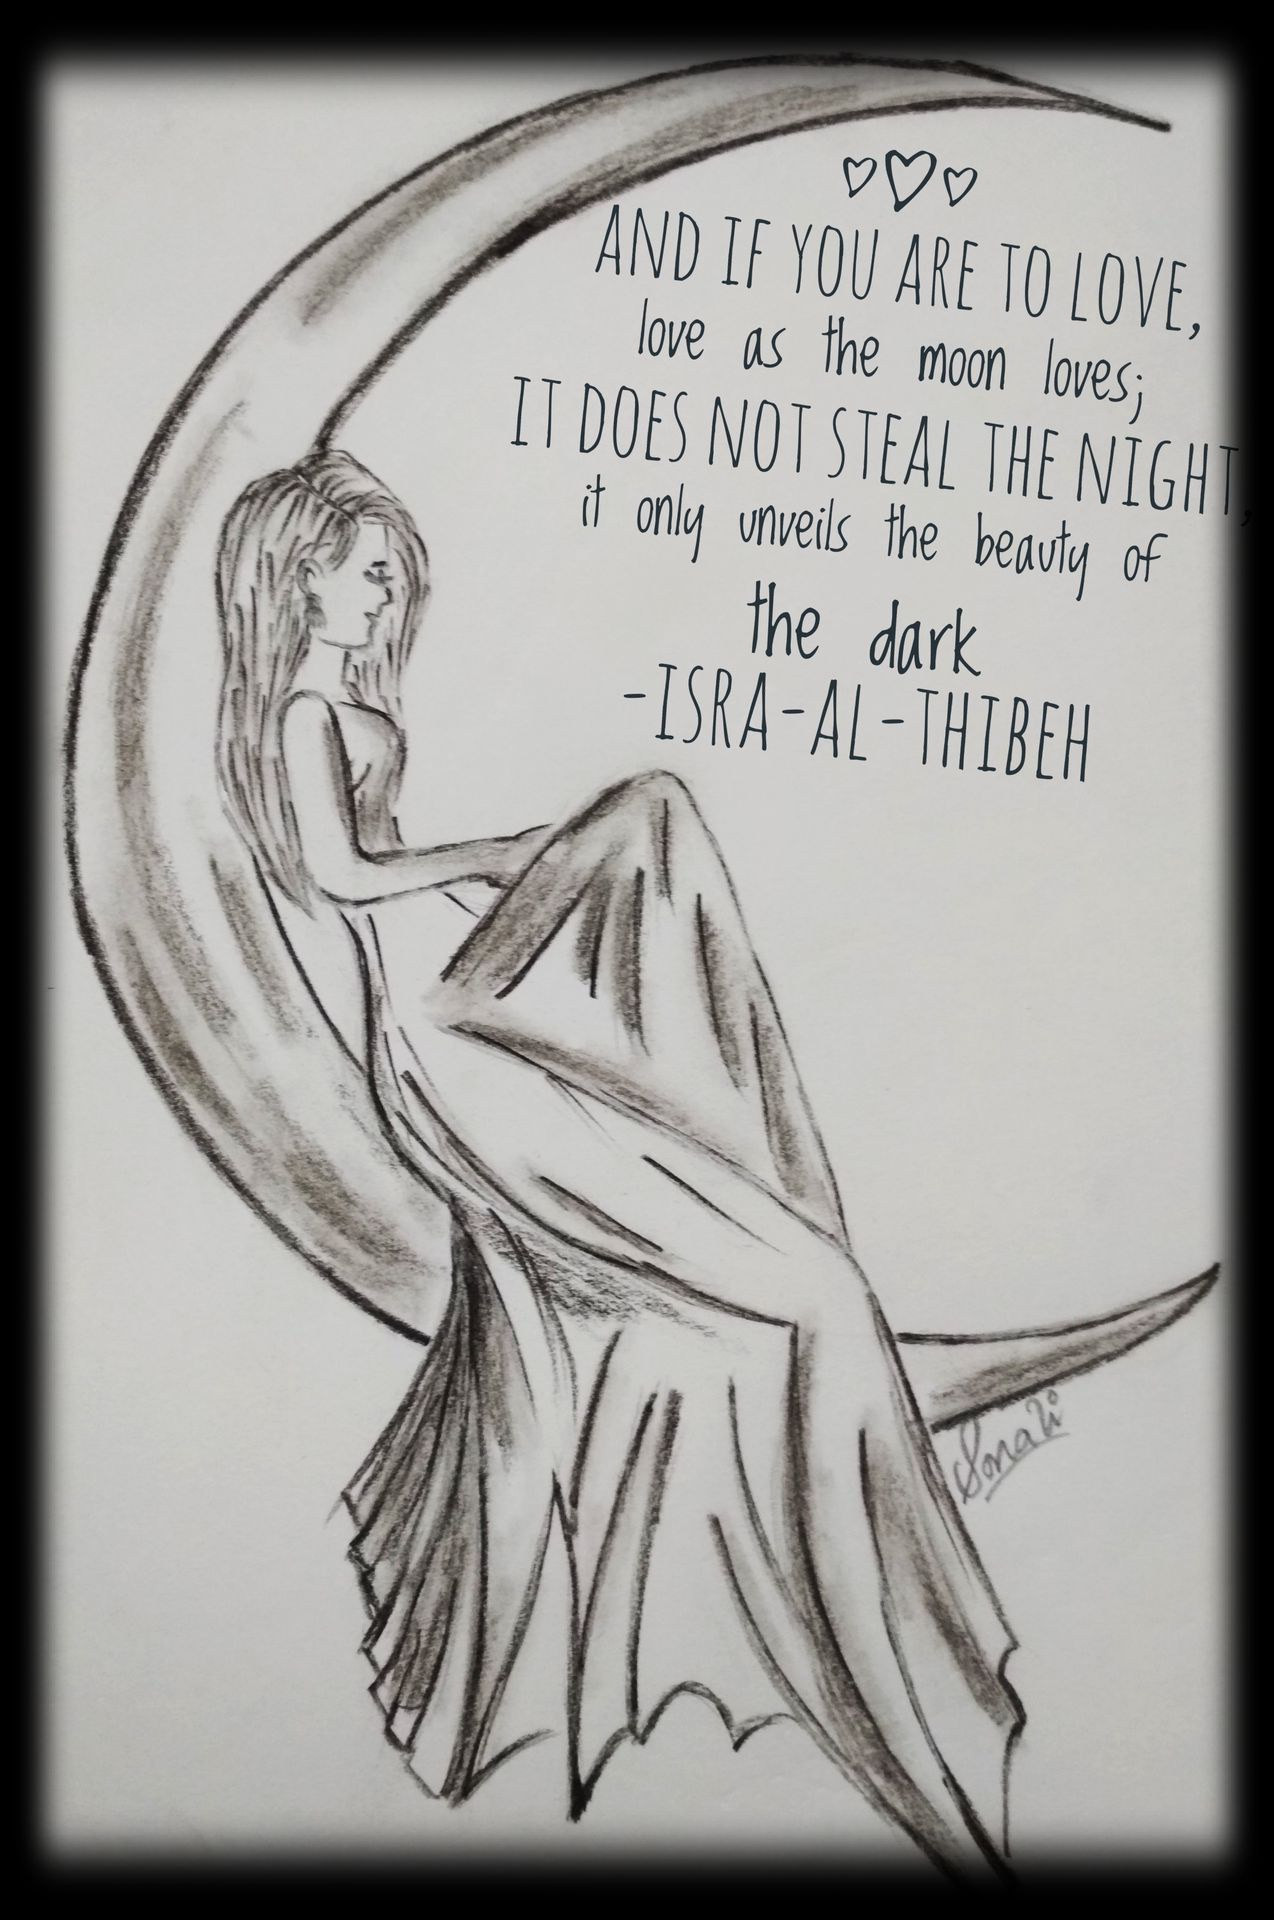 Loneliness love moon oldage photpgraphy play quotes rumi sad school sea sketch swamivivekananda thoughts whitecharcoal women youth